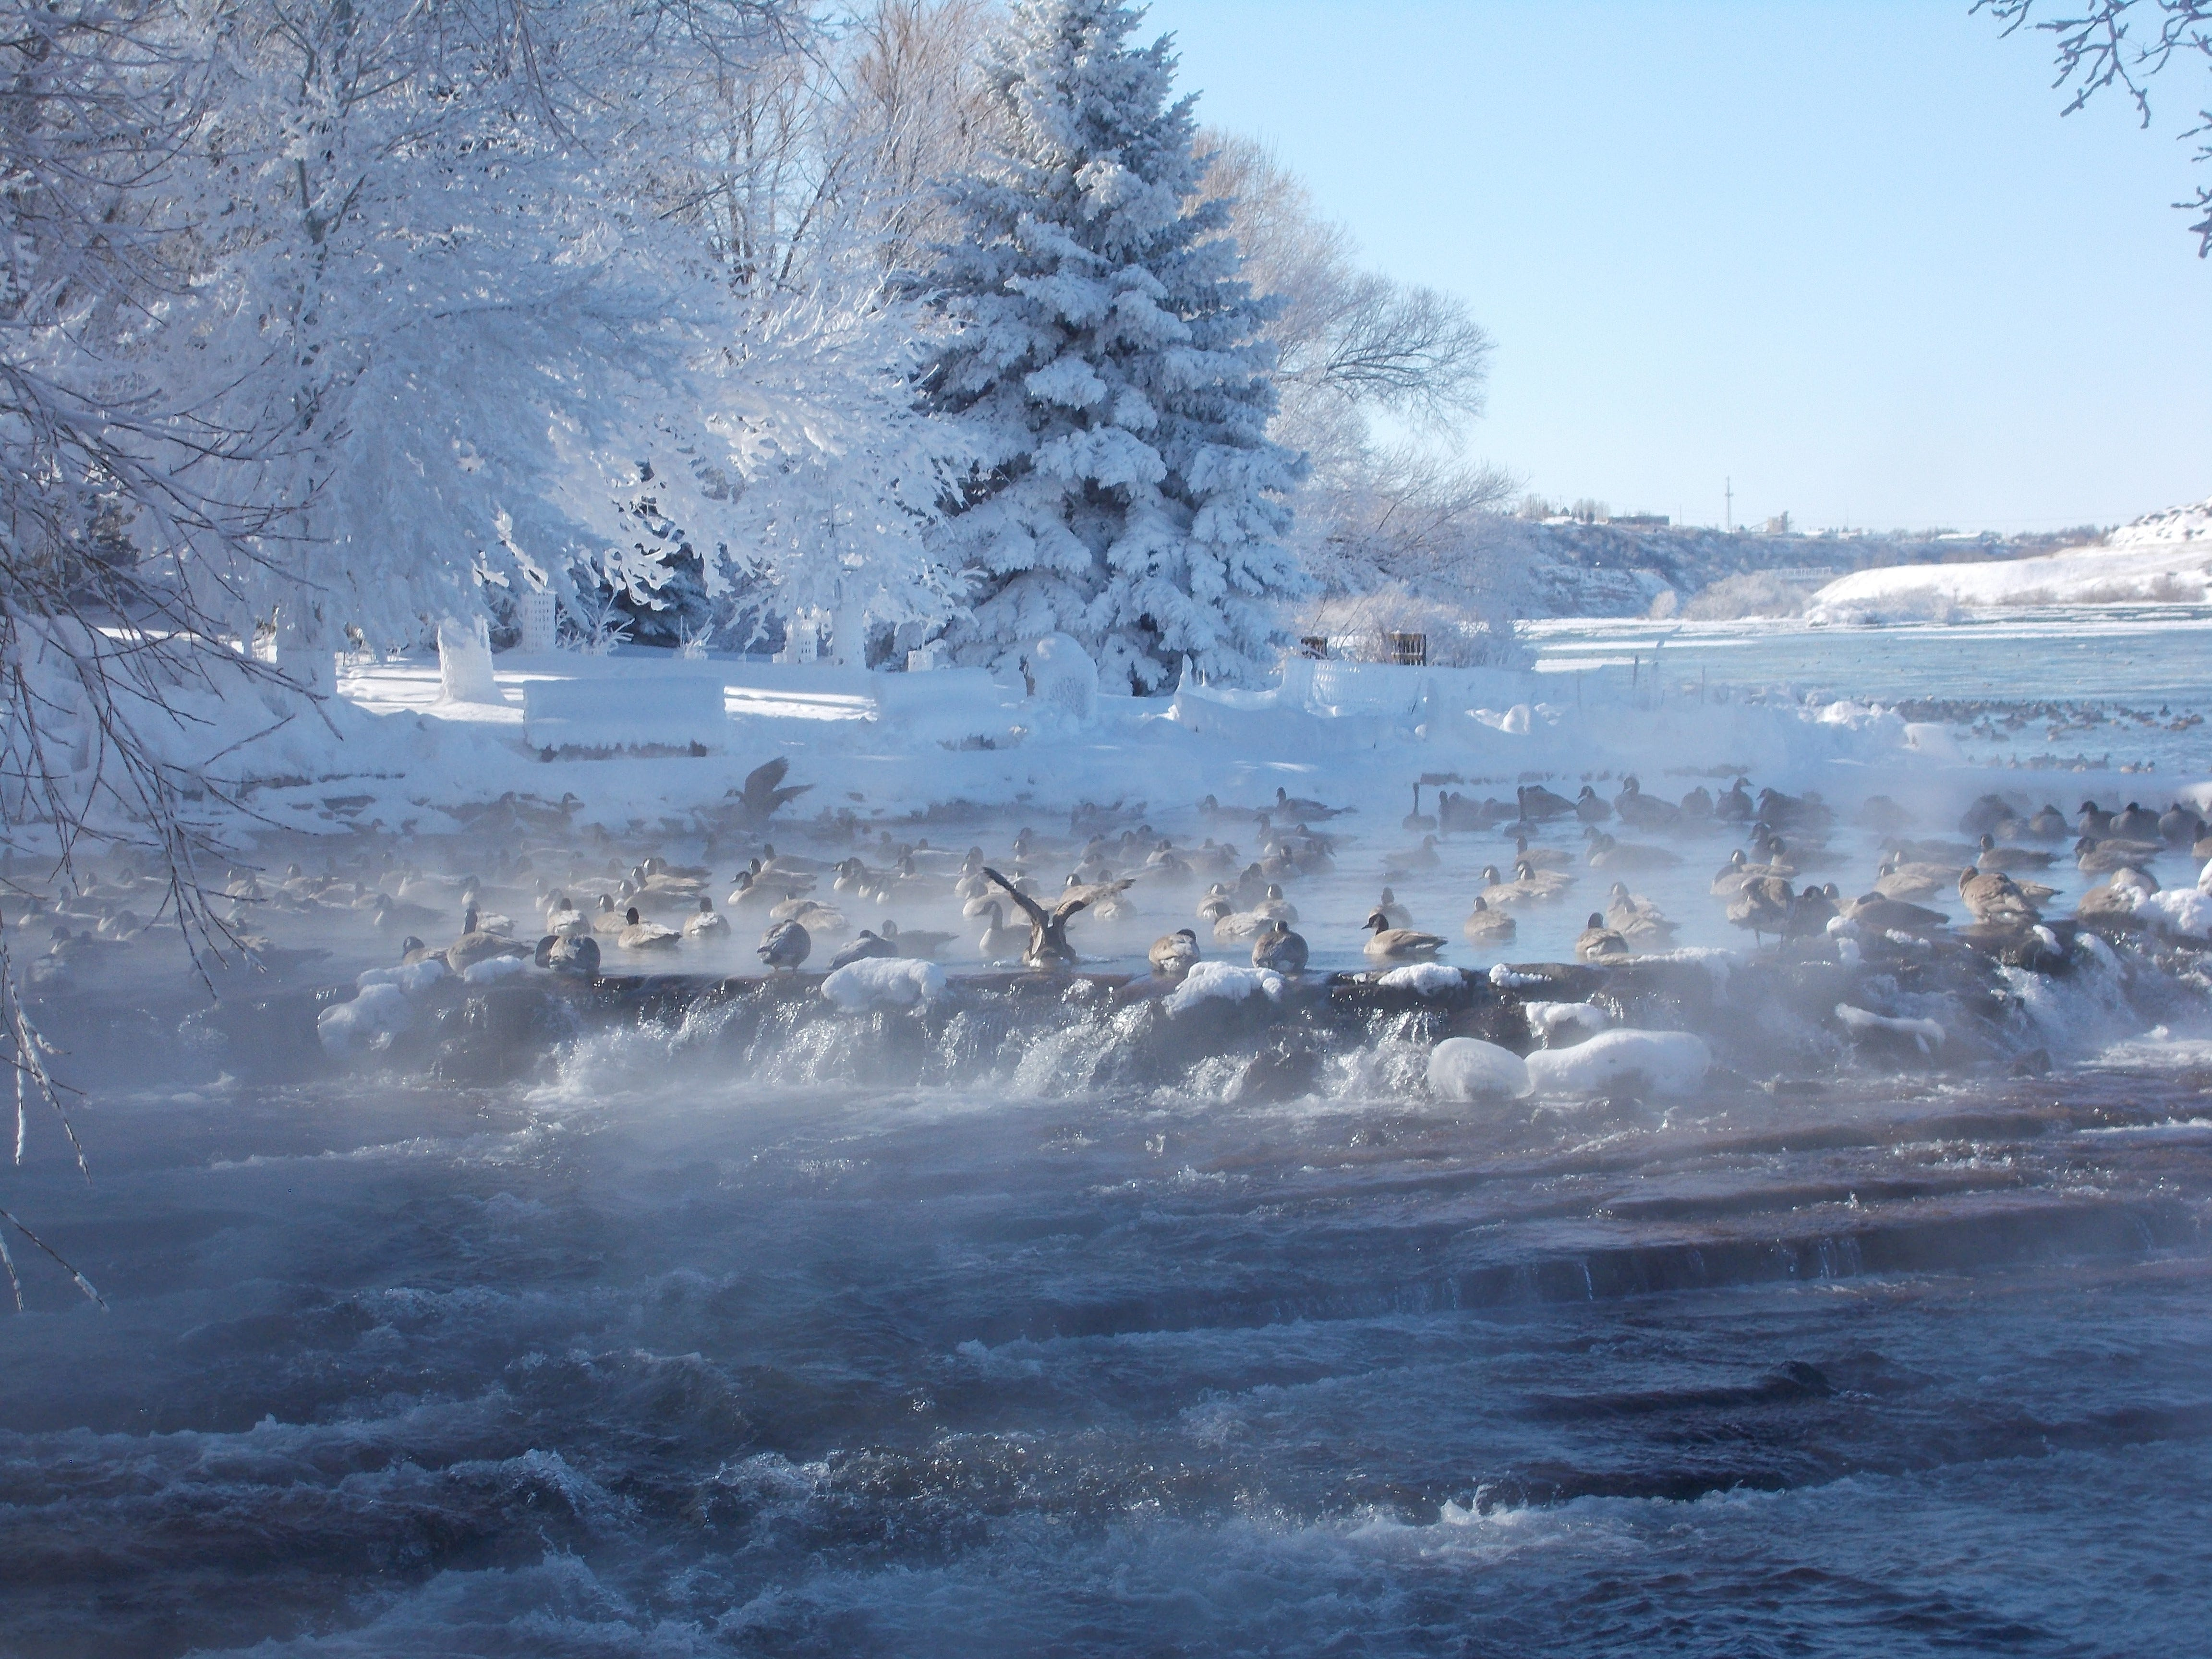 Canada geese flocked to Giant Springs State Park Thursday when the temperature was 21 degrees below zero to start the day.